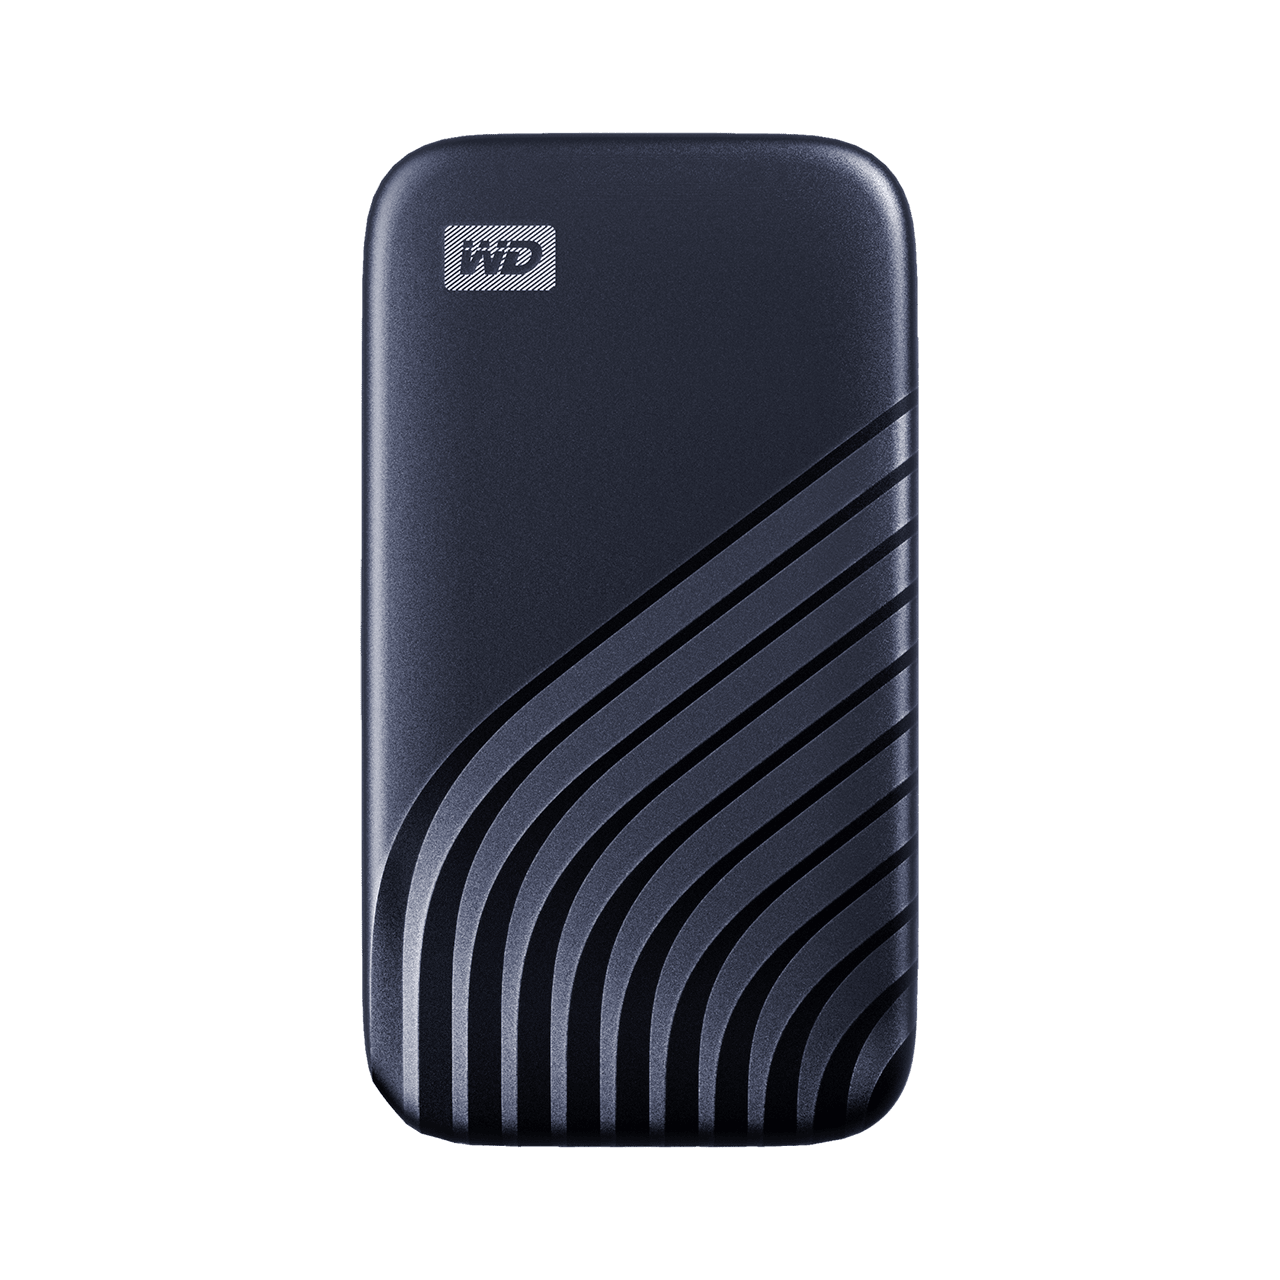 WD Western Digital My Passport SSD 500GB / 1TB Portable External SSD with USB 3.2 Gen 2, Up To 1050mb/s Read Password Protection, Simple Back Up, Shock Resistant